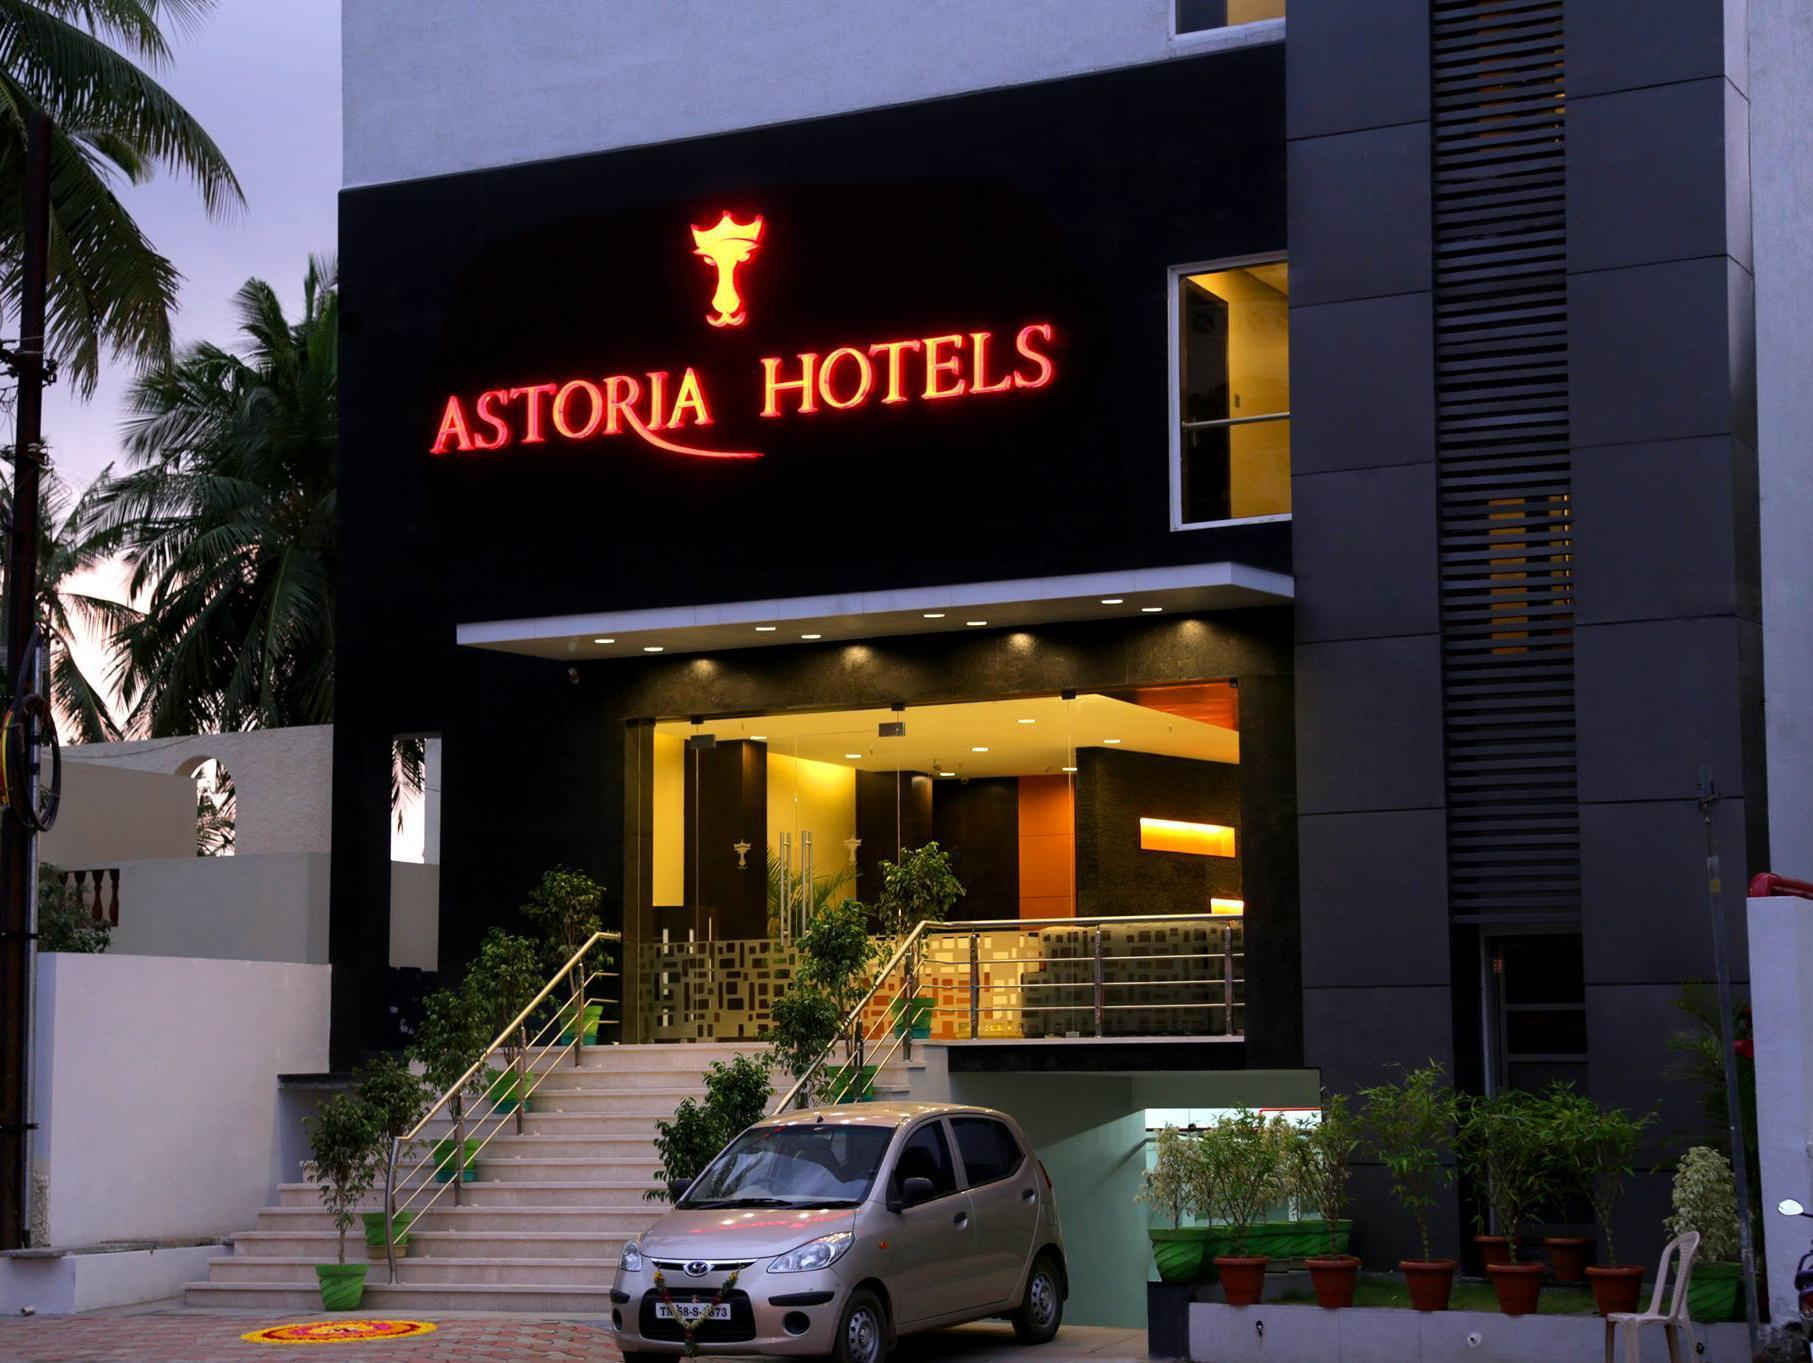 Astoria Hotels By Sparsa - Madurai